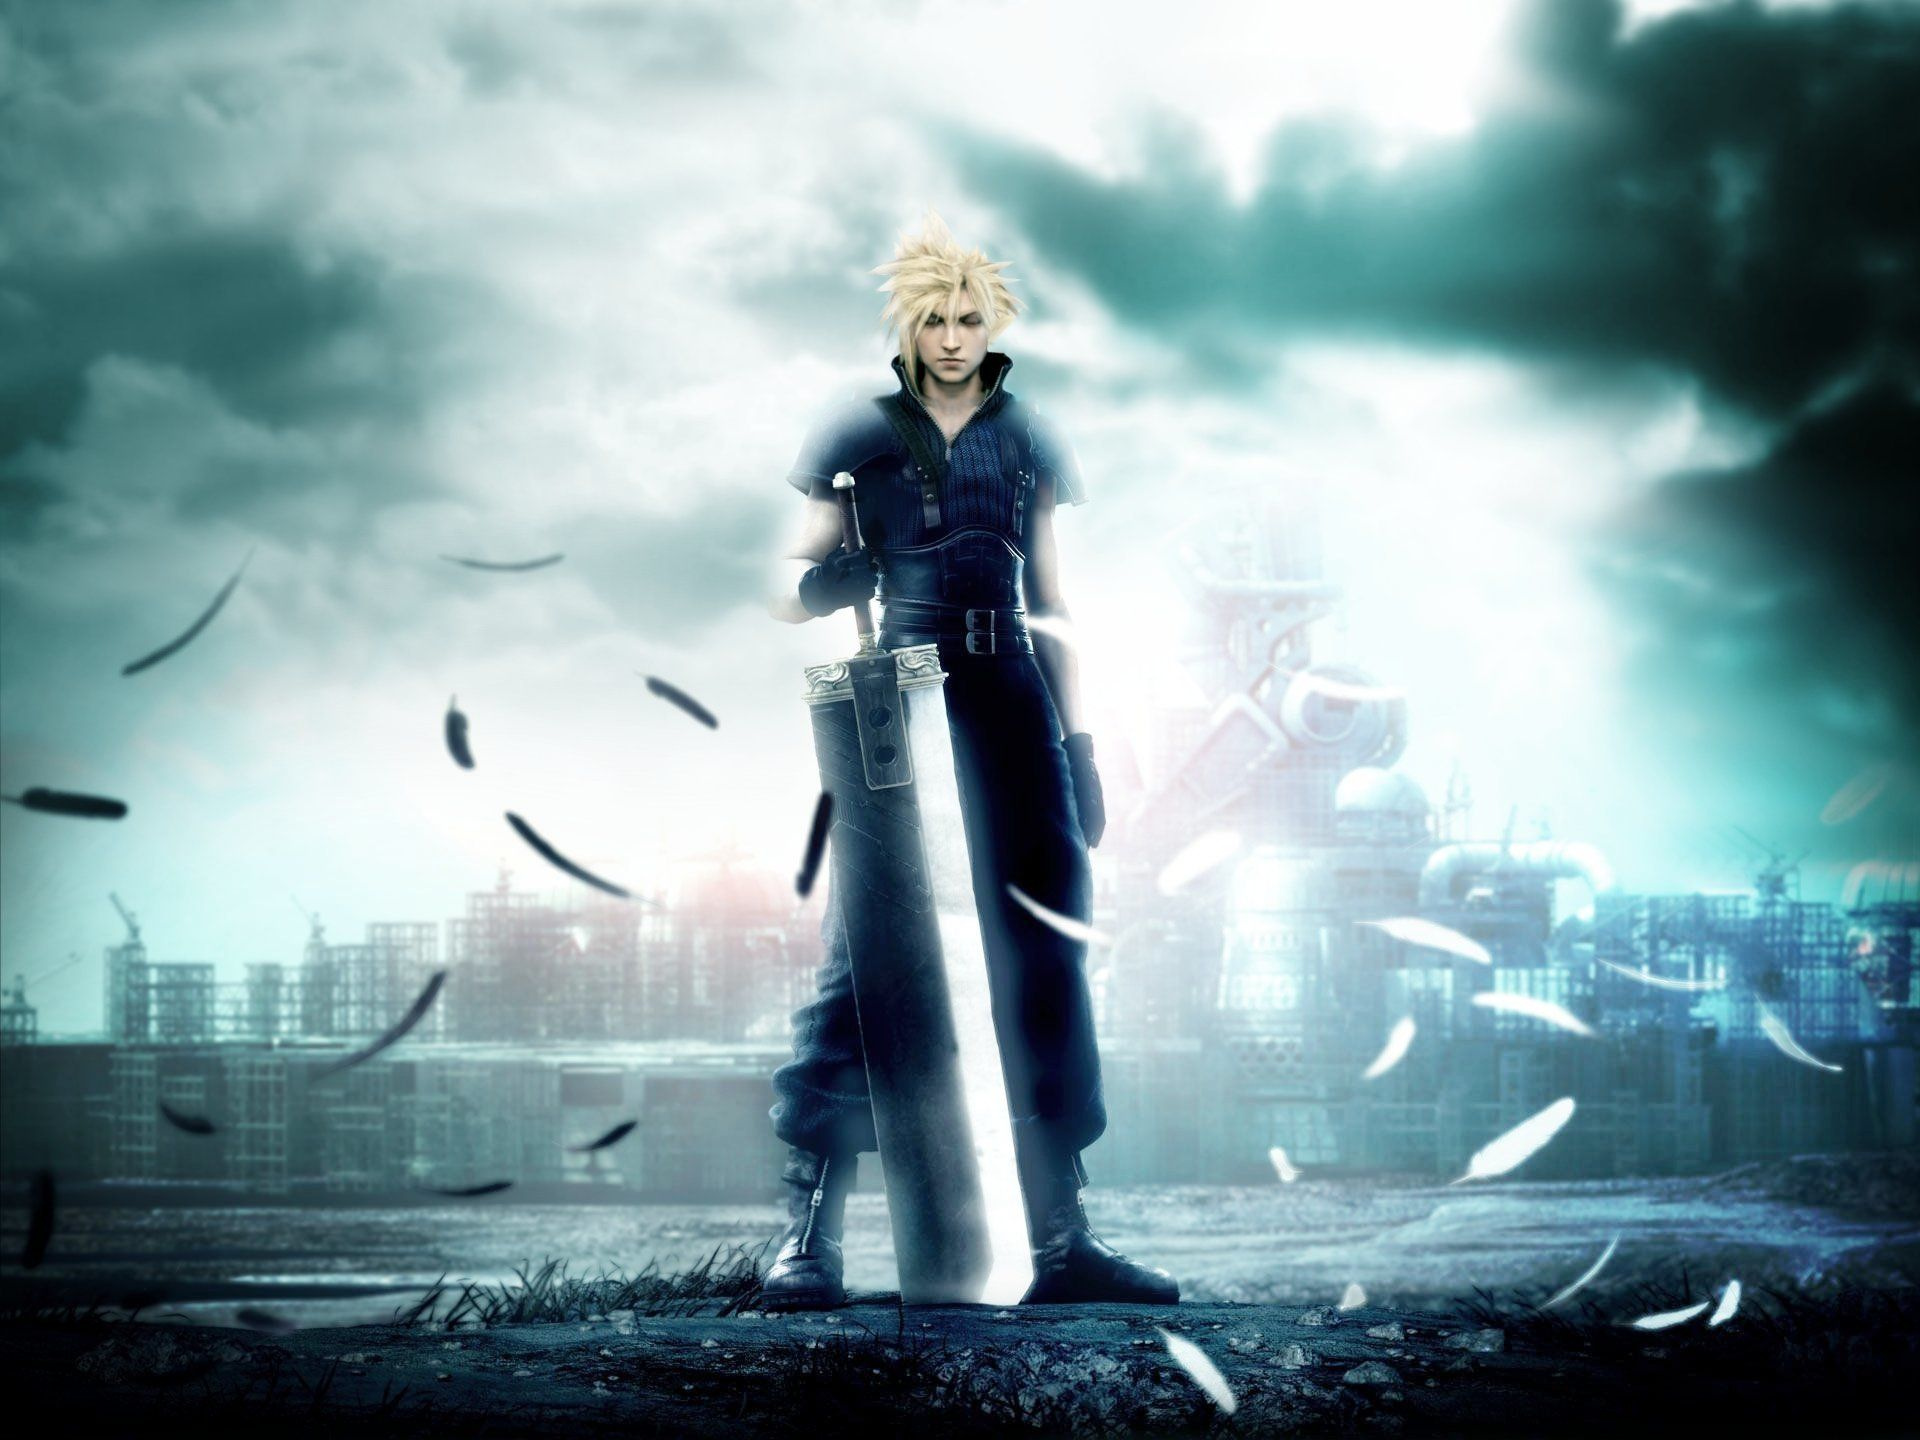 12 Final Fantasy Vii Advent Children Hd Wallpapers Backgrounds